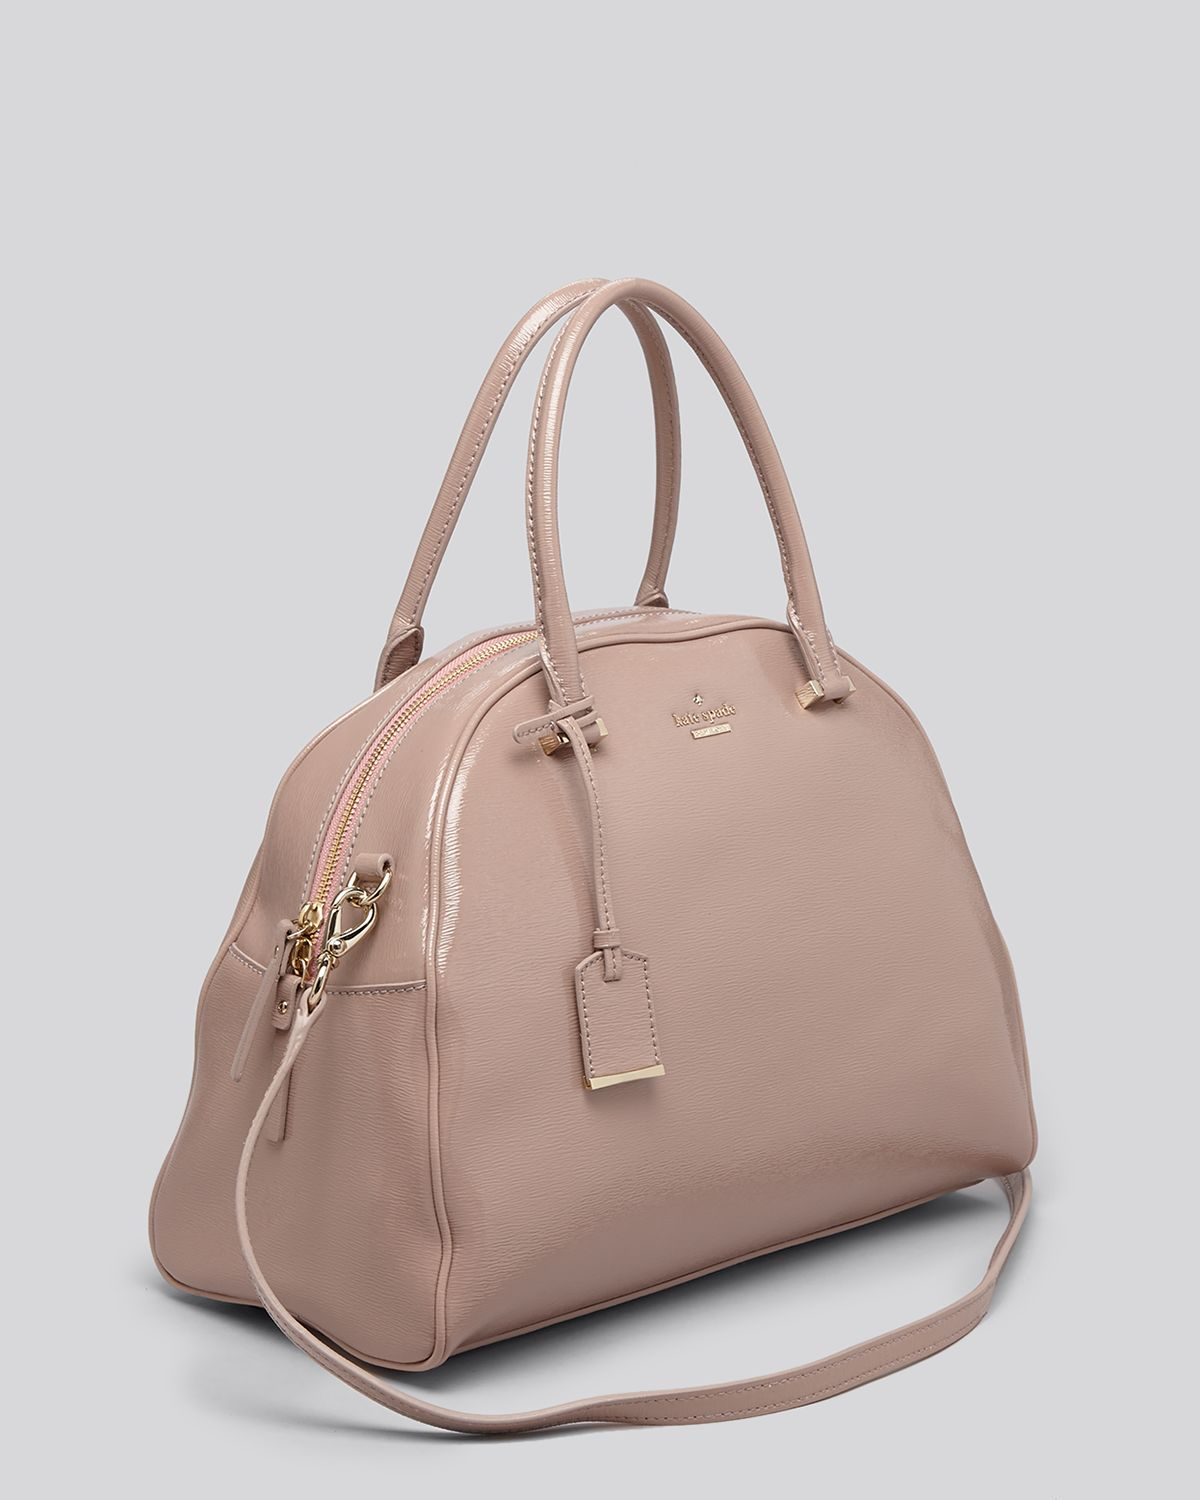 Lyst - Kate Spade New York Satchel - Cedar Street Patent Pearl in Pink